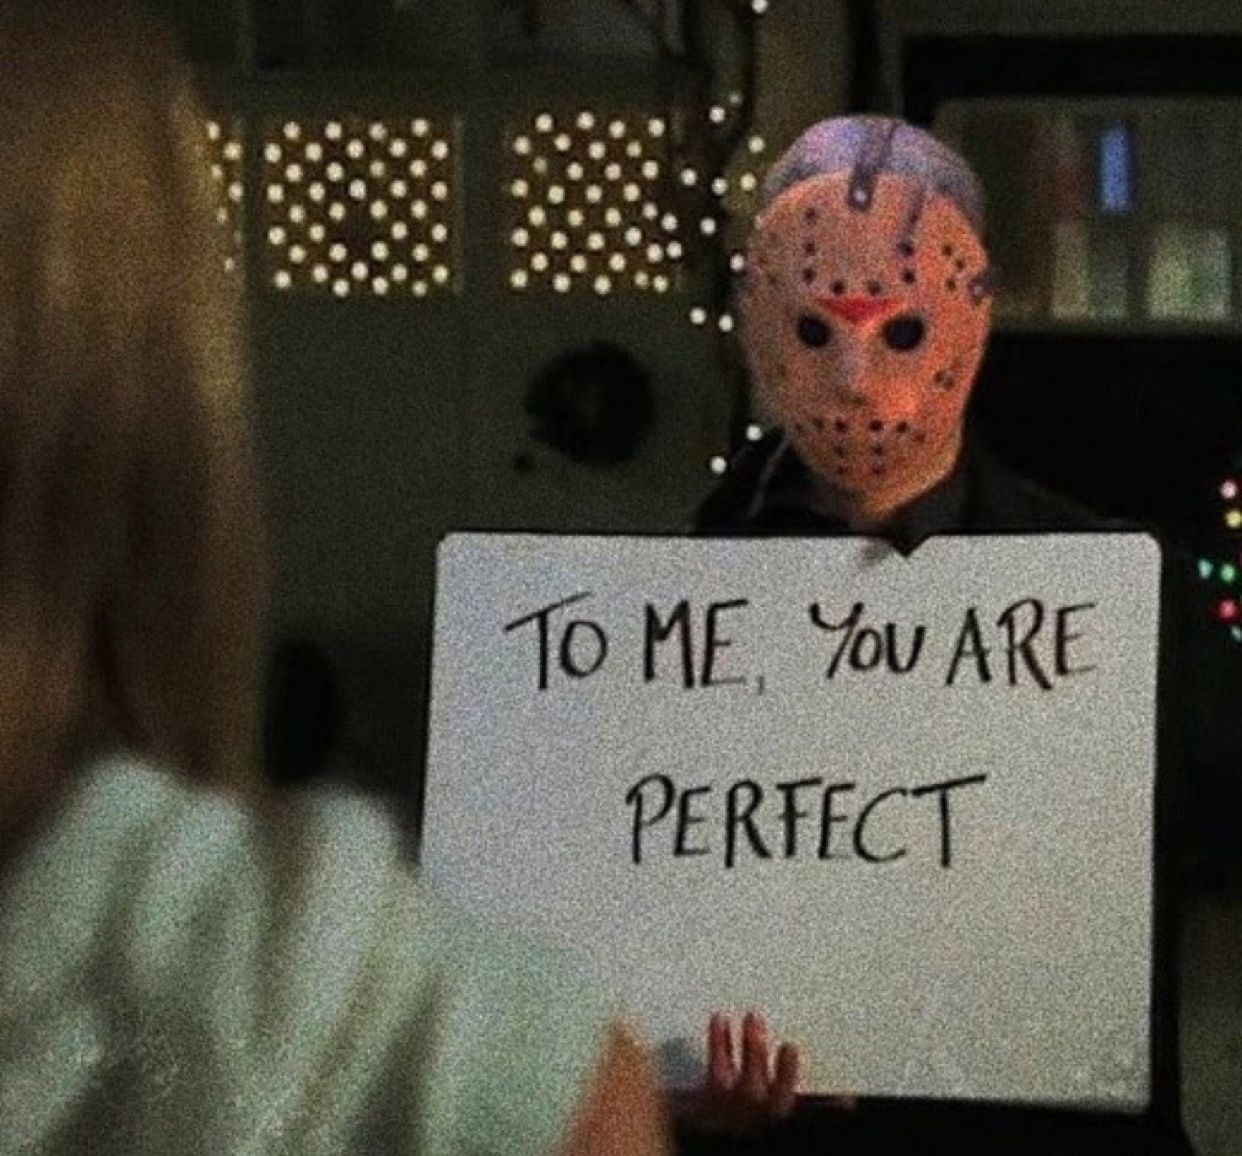 Pin by Kat 💫 on Slasher Daddys You are perfect, Memes